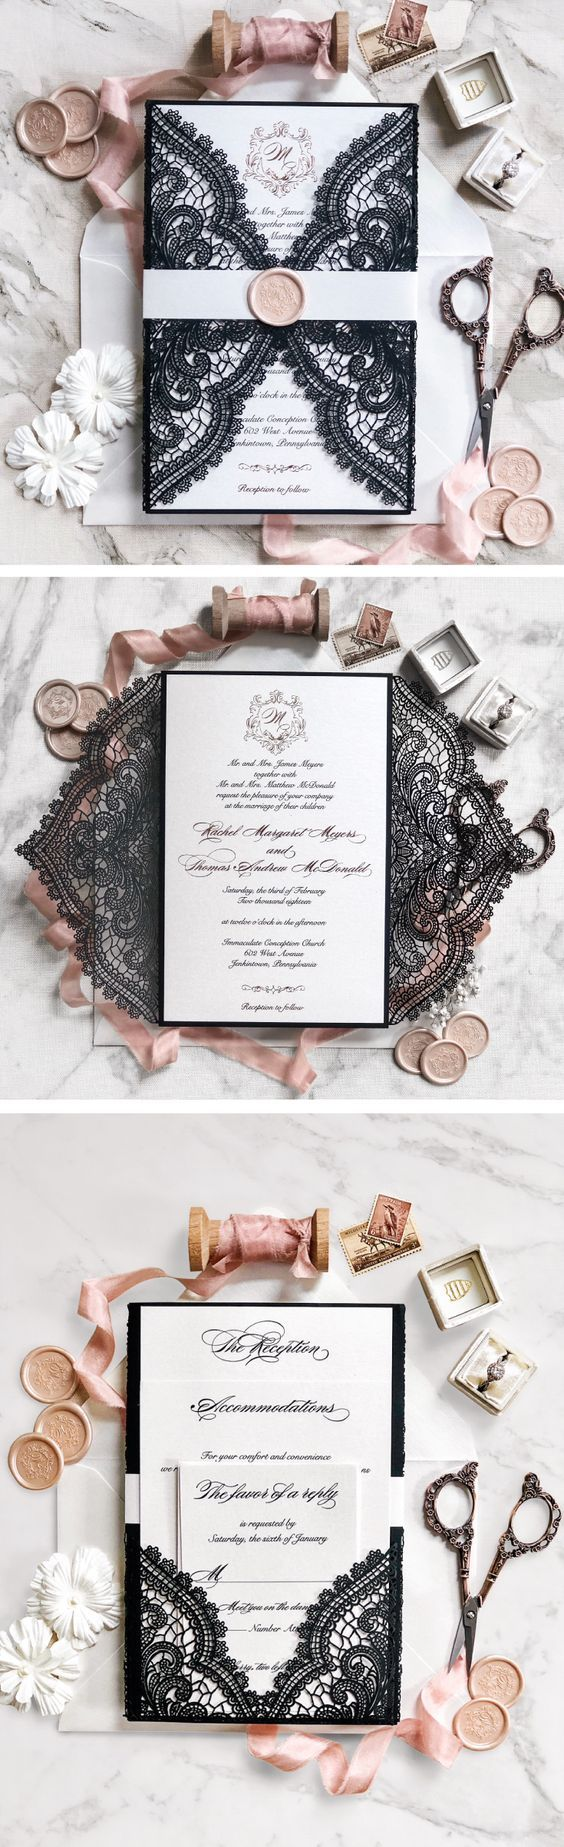 zazzle wedding invitations promo code%0A black lace wedding invitation with stylish band  laser cut spring wedding  invitations  printable wedding